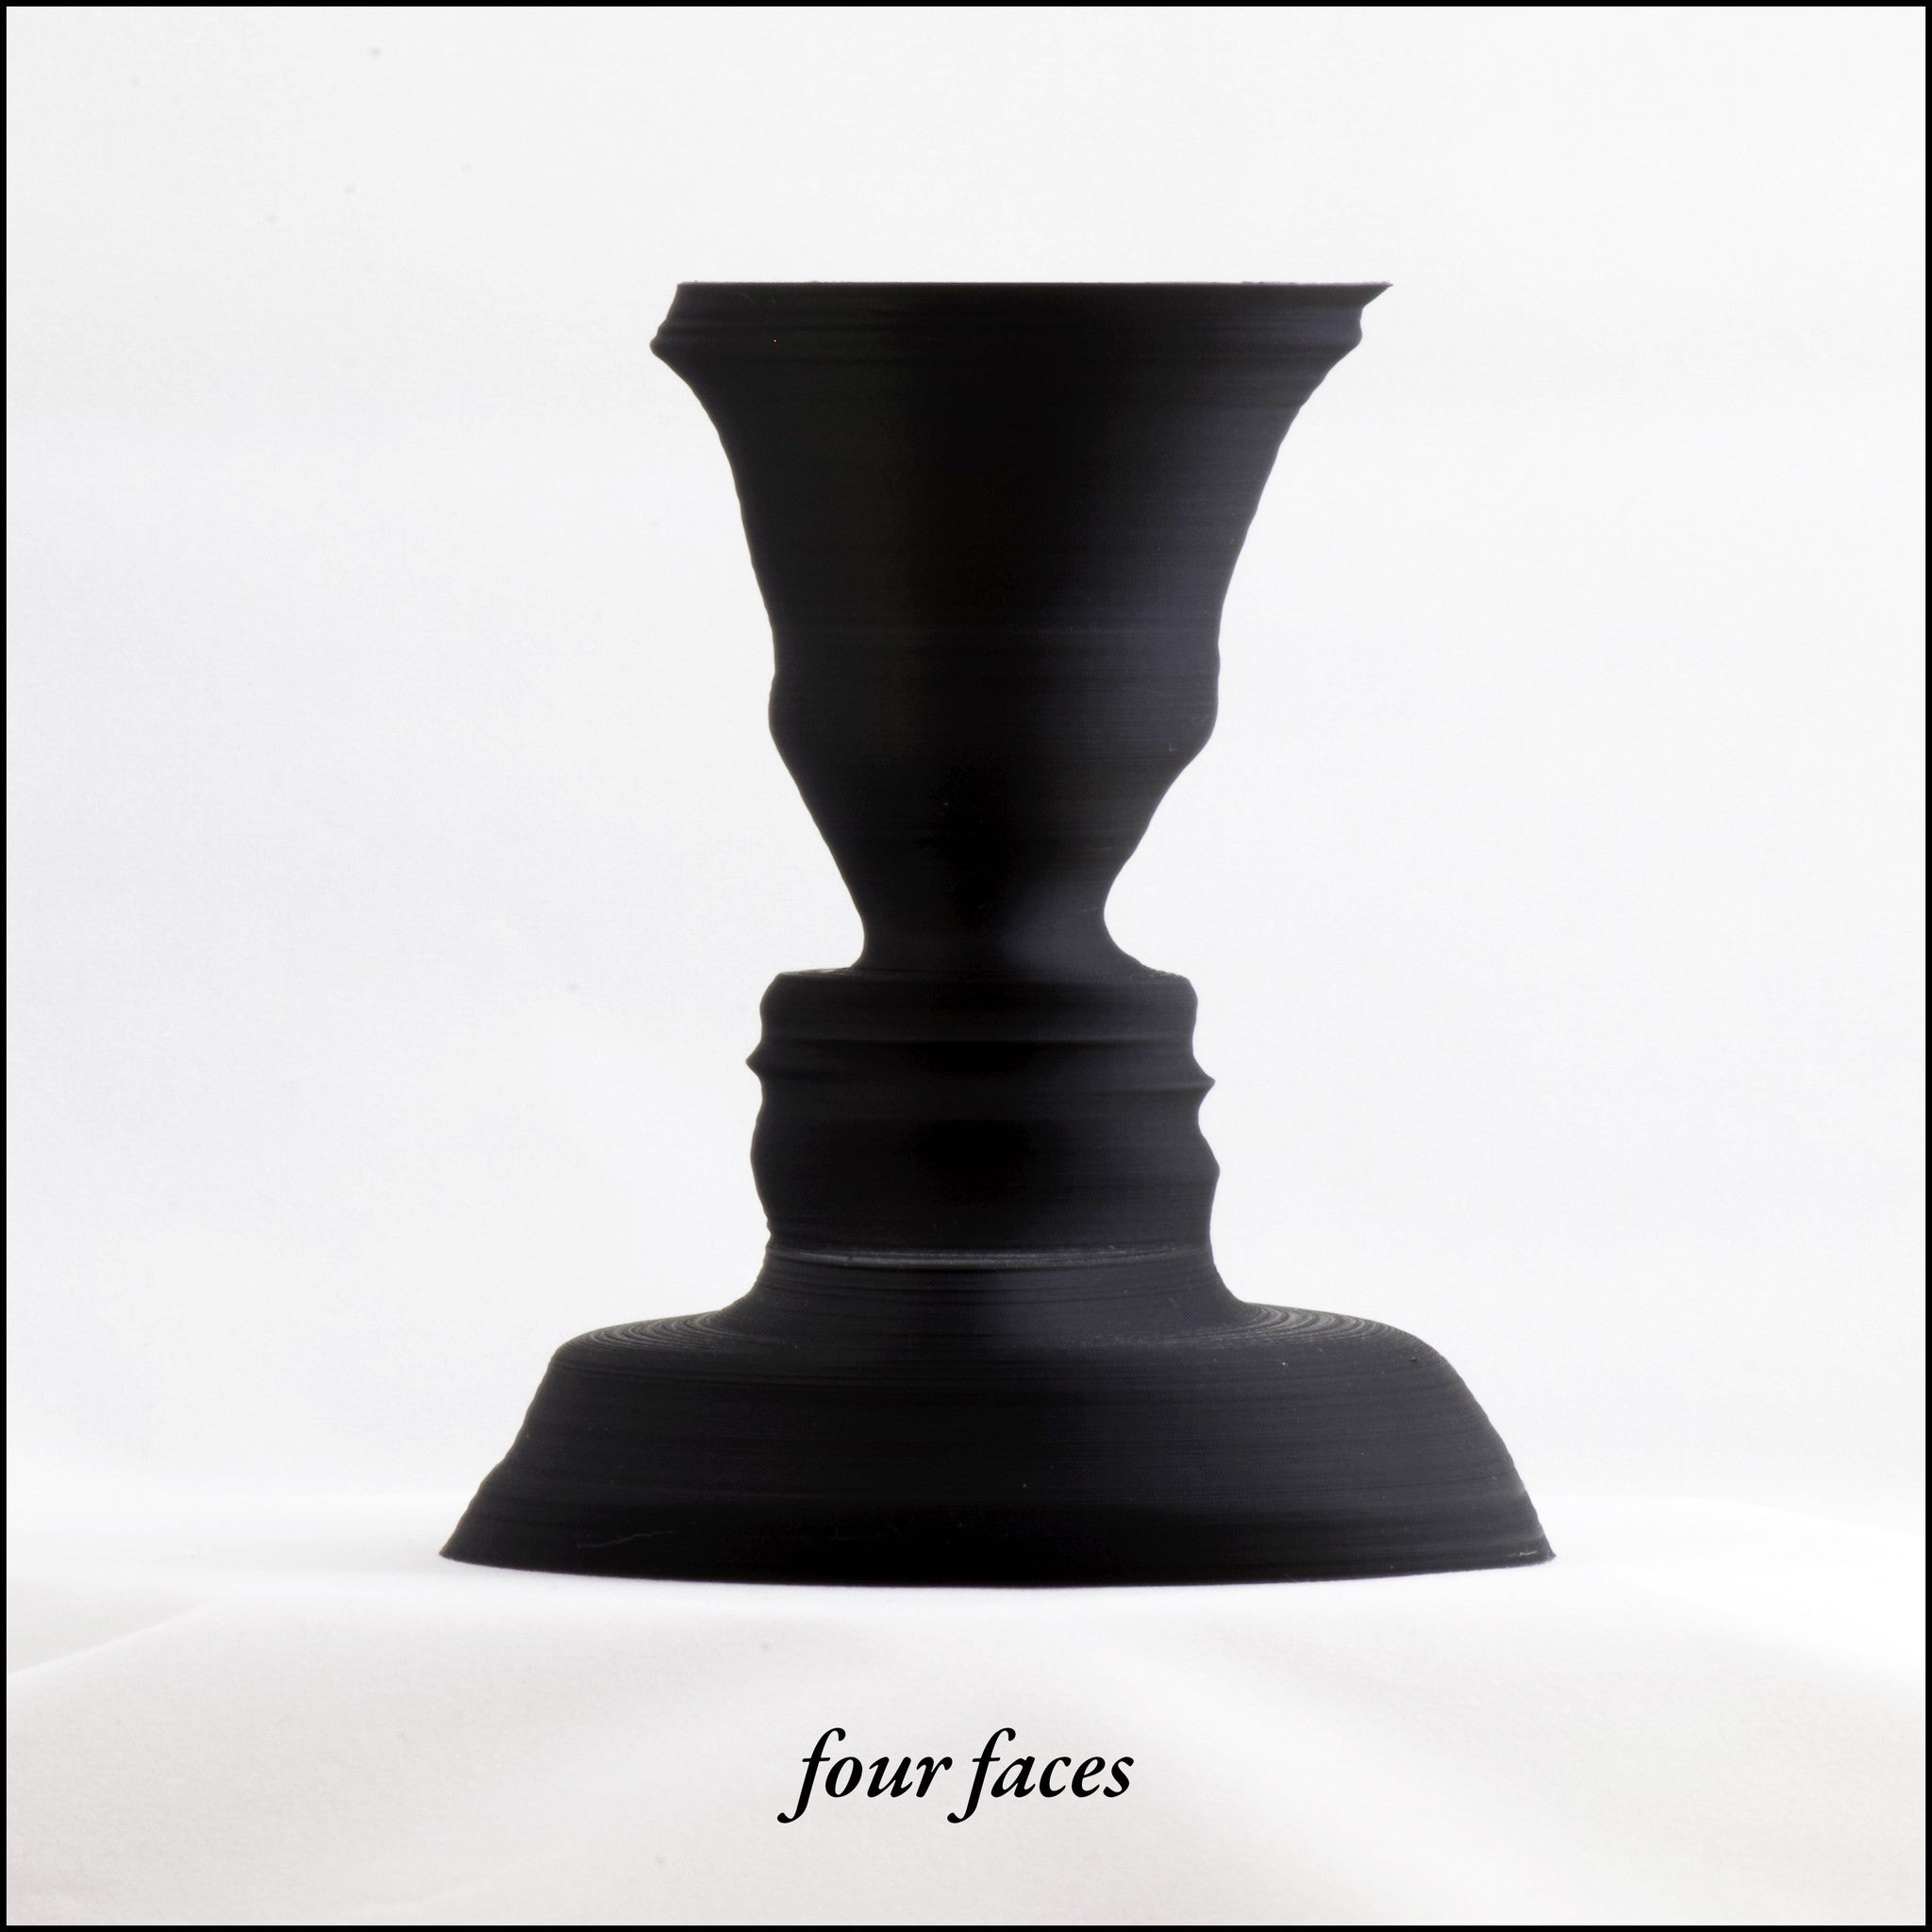 Fahz its your face in a vase custom 3d printed vase in black pla plastic 5 inch reviewsmspy